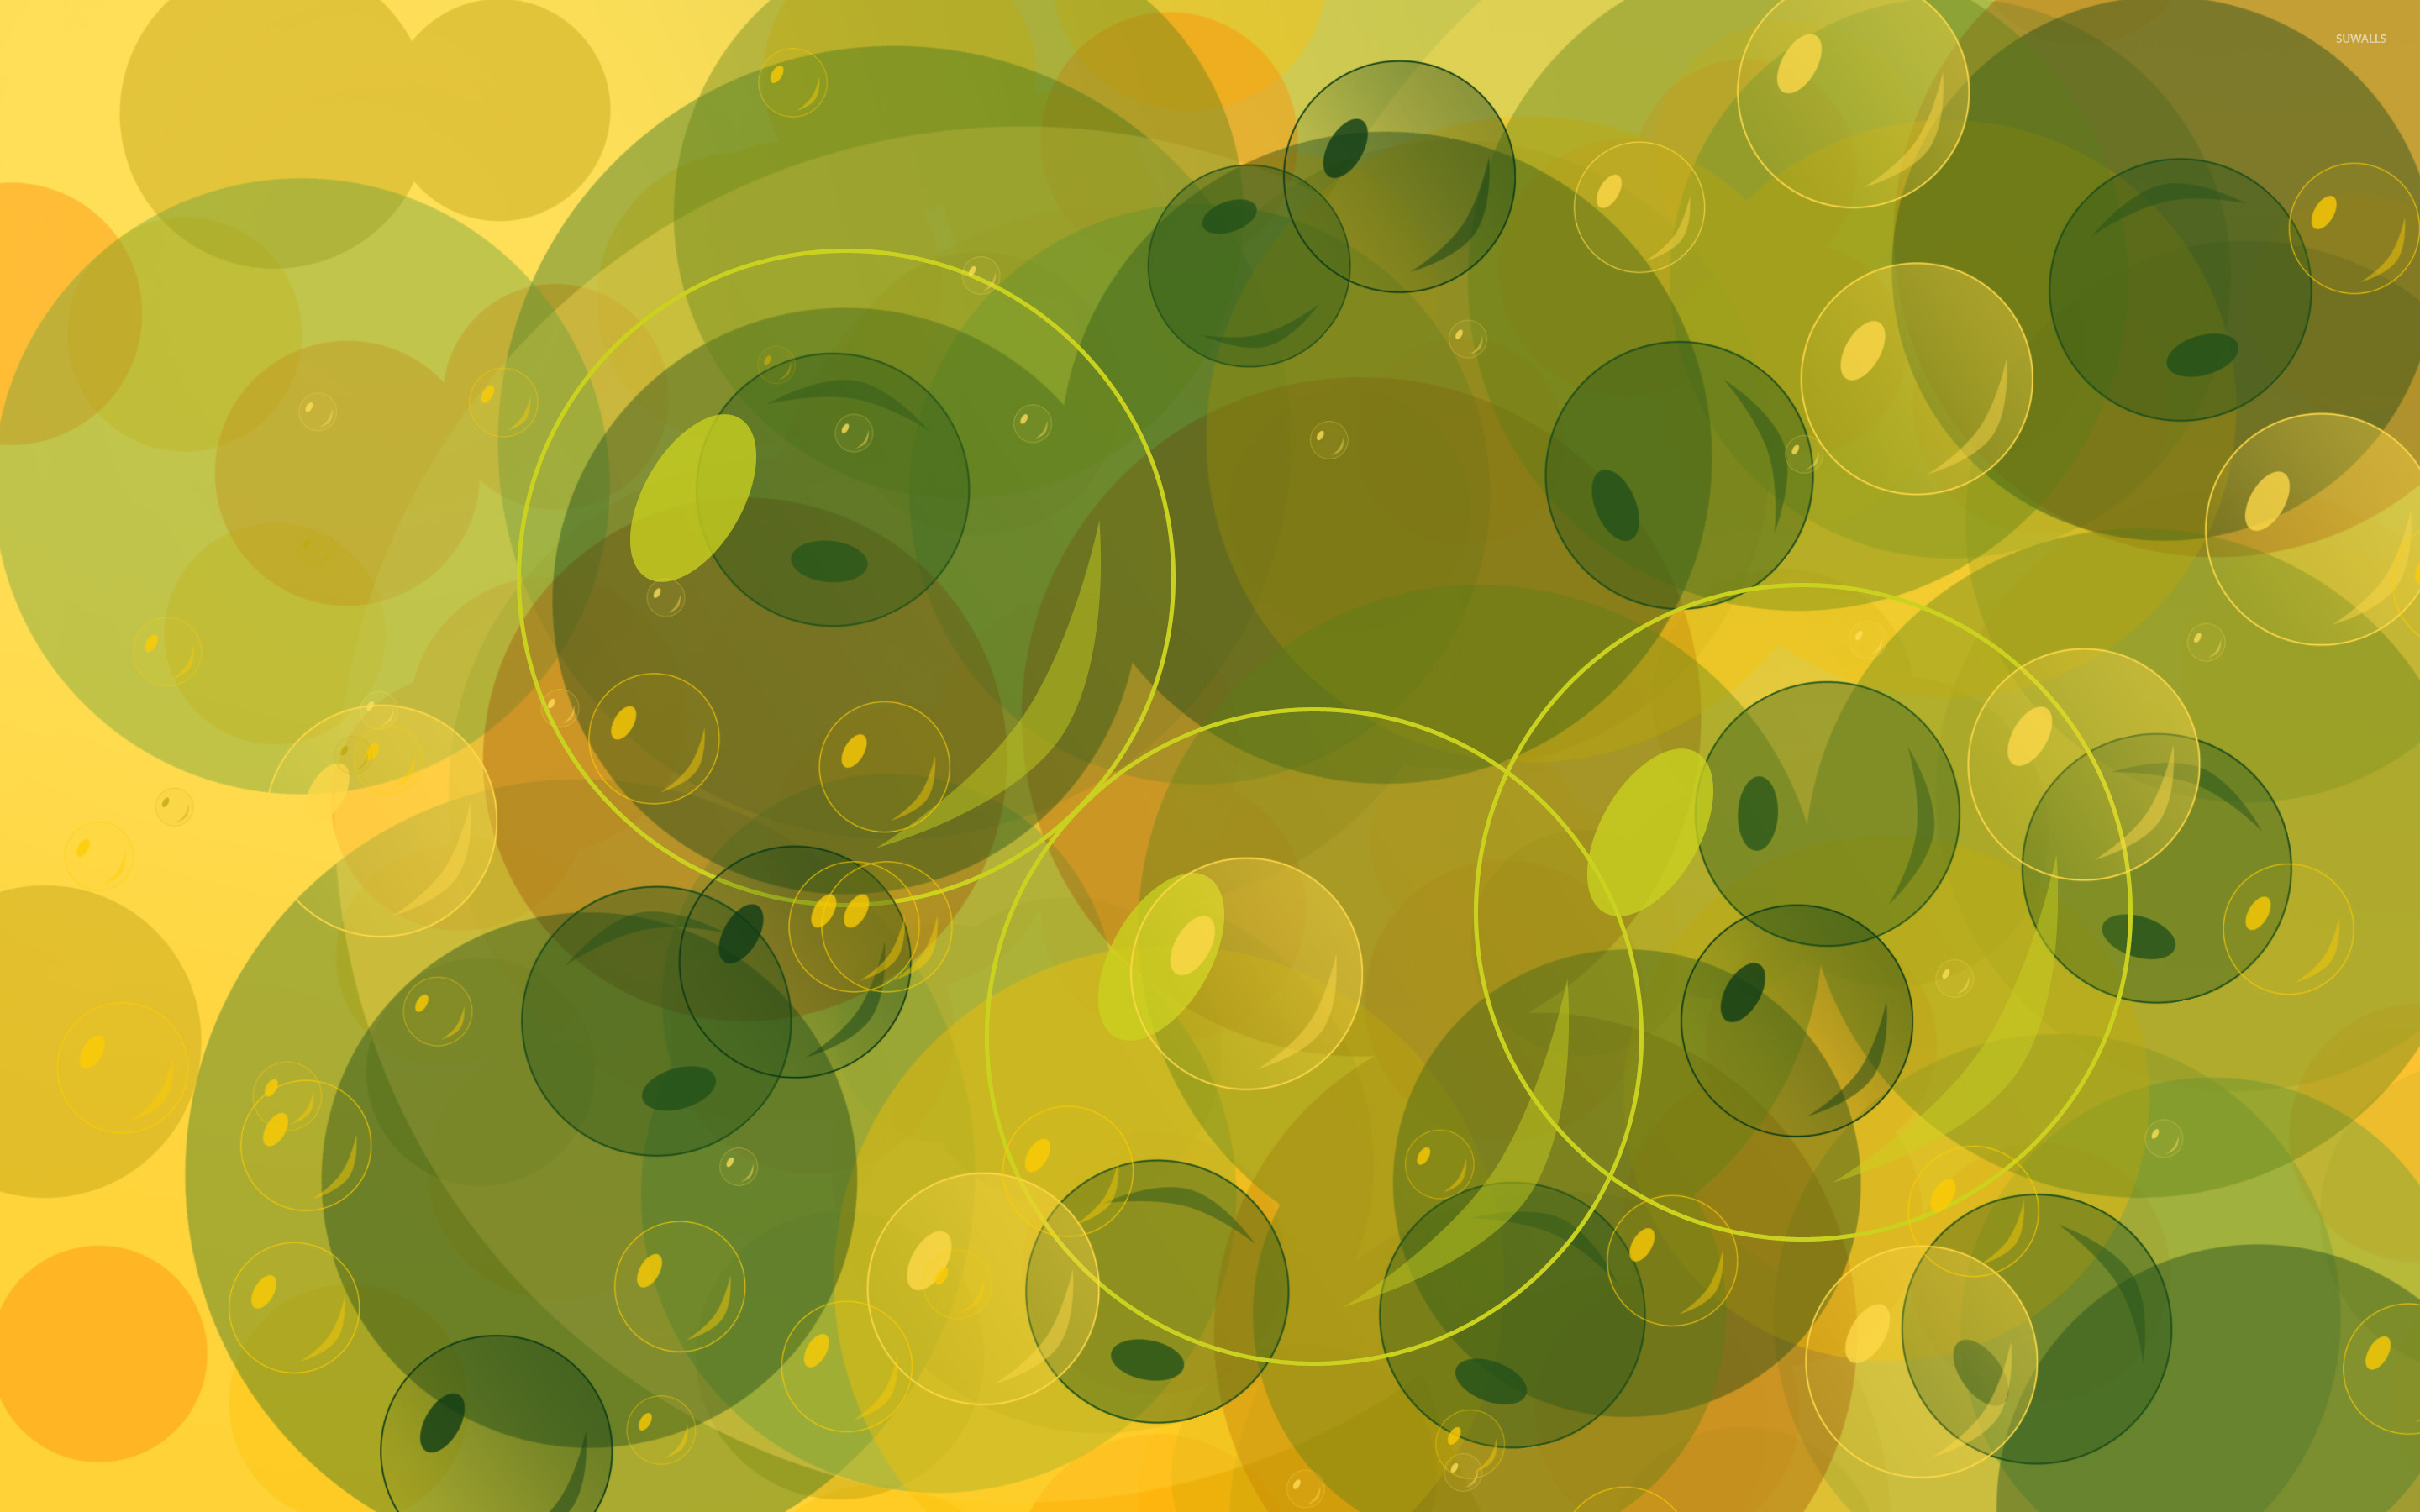 Green Bubbles Wallpapers HD